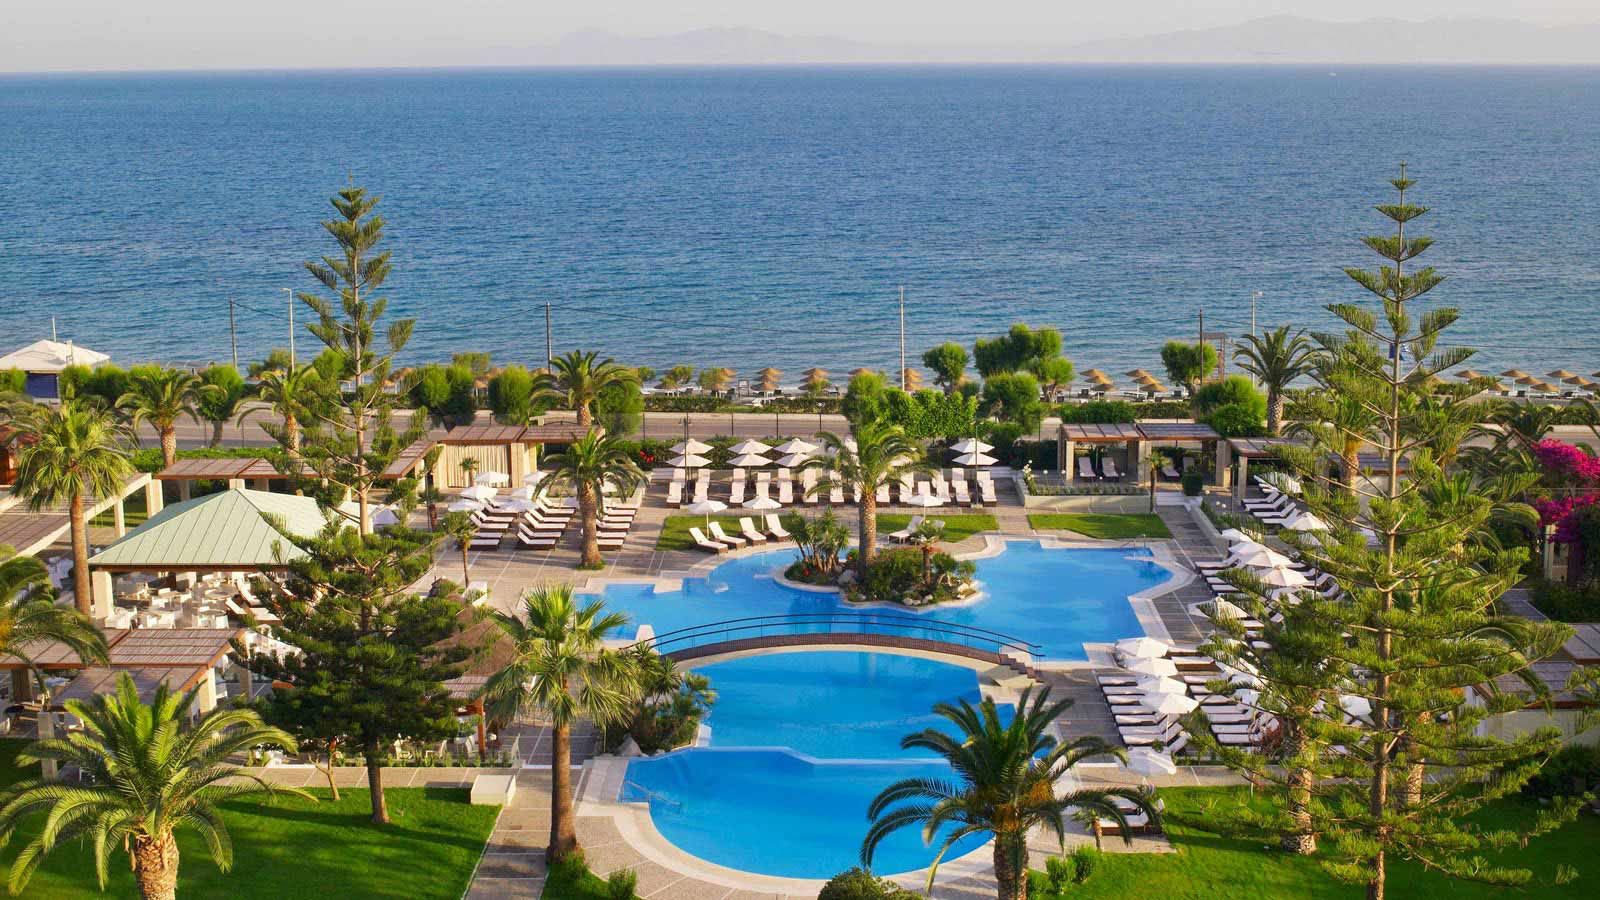 The main pool at the Sheraton Rhodes Resort is the center of all summer activity